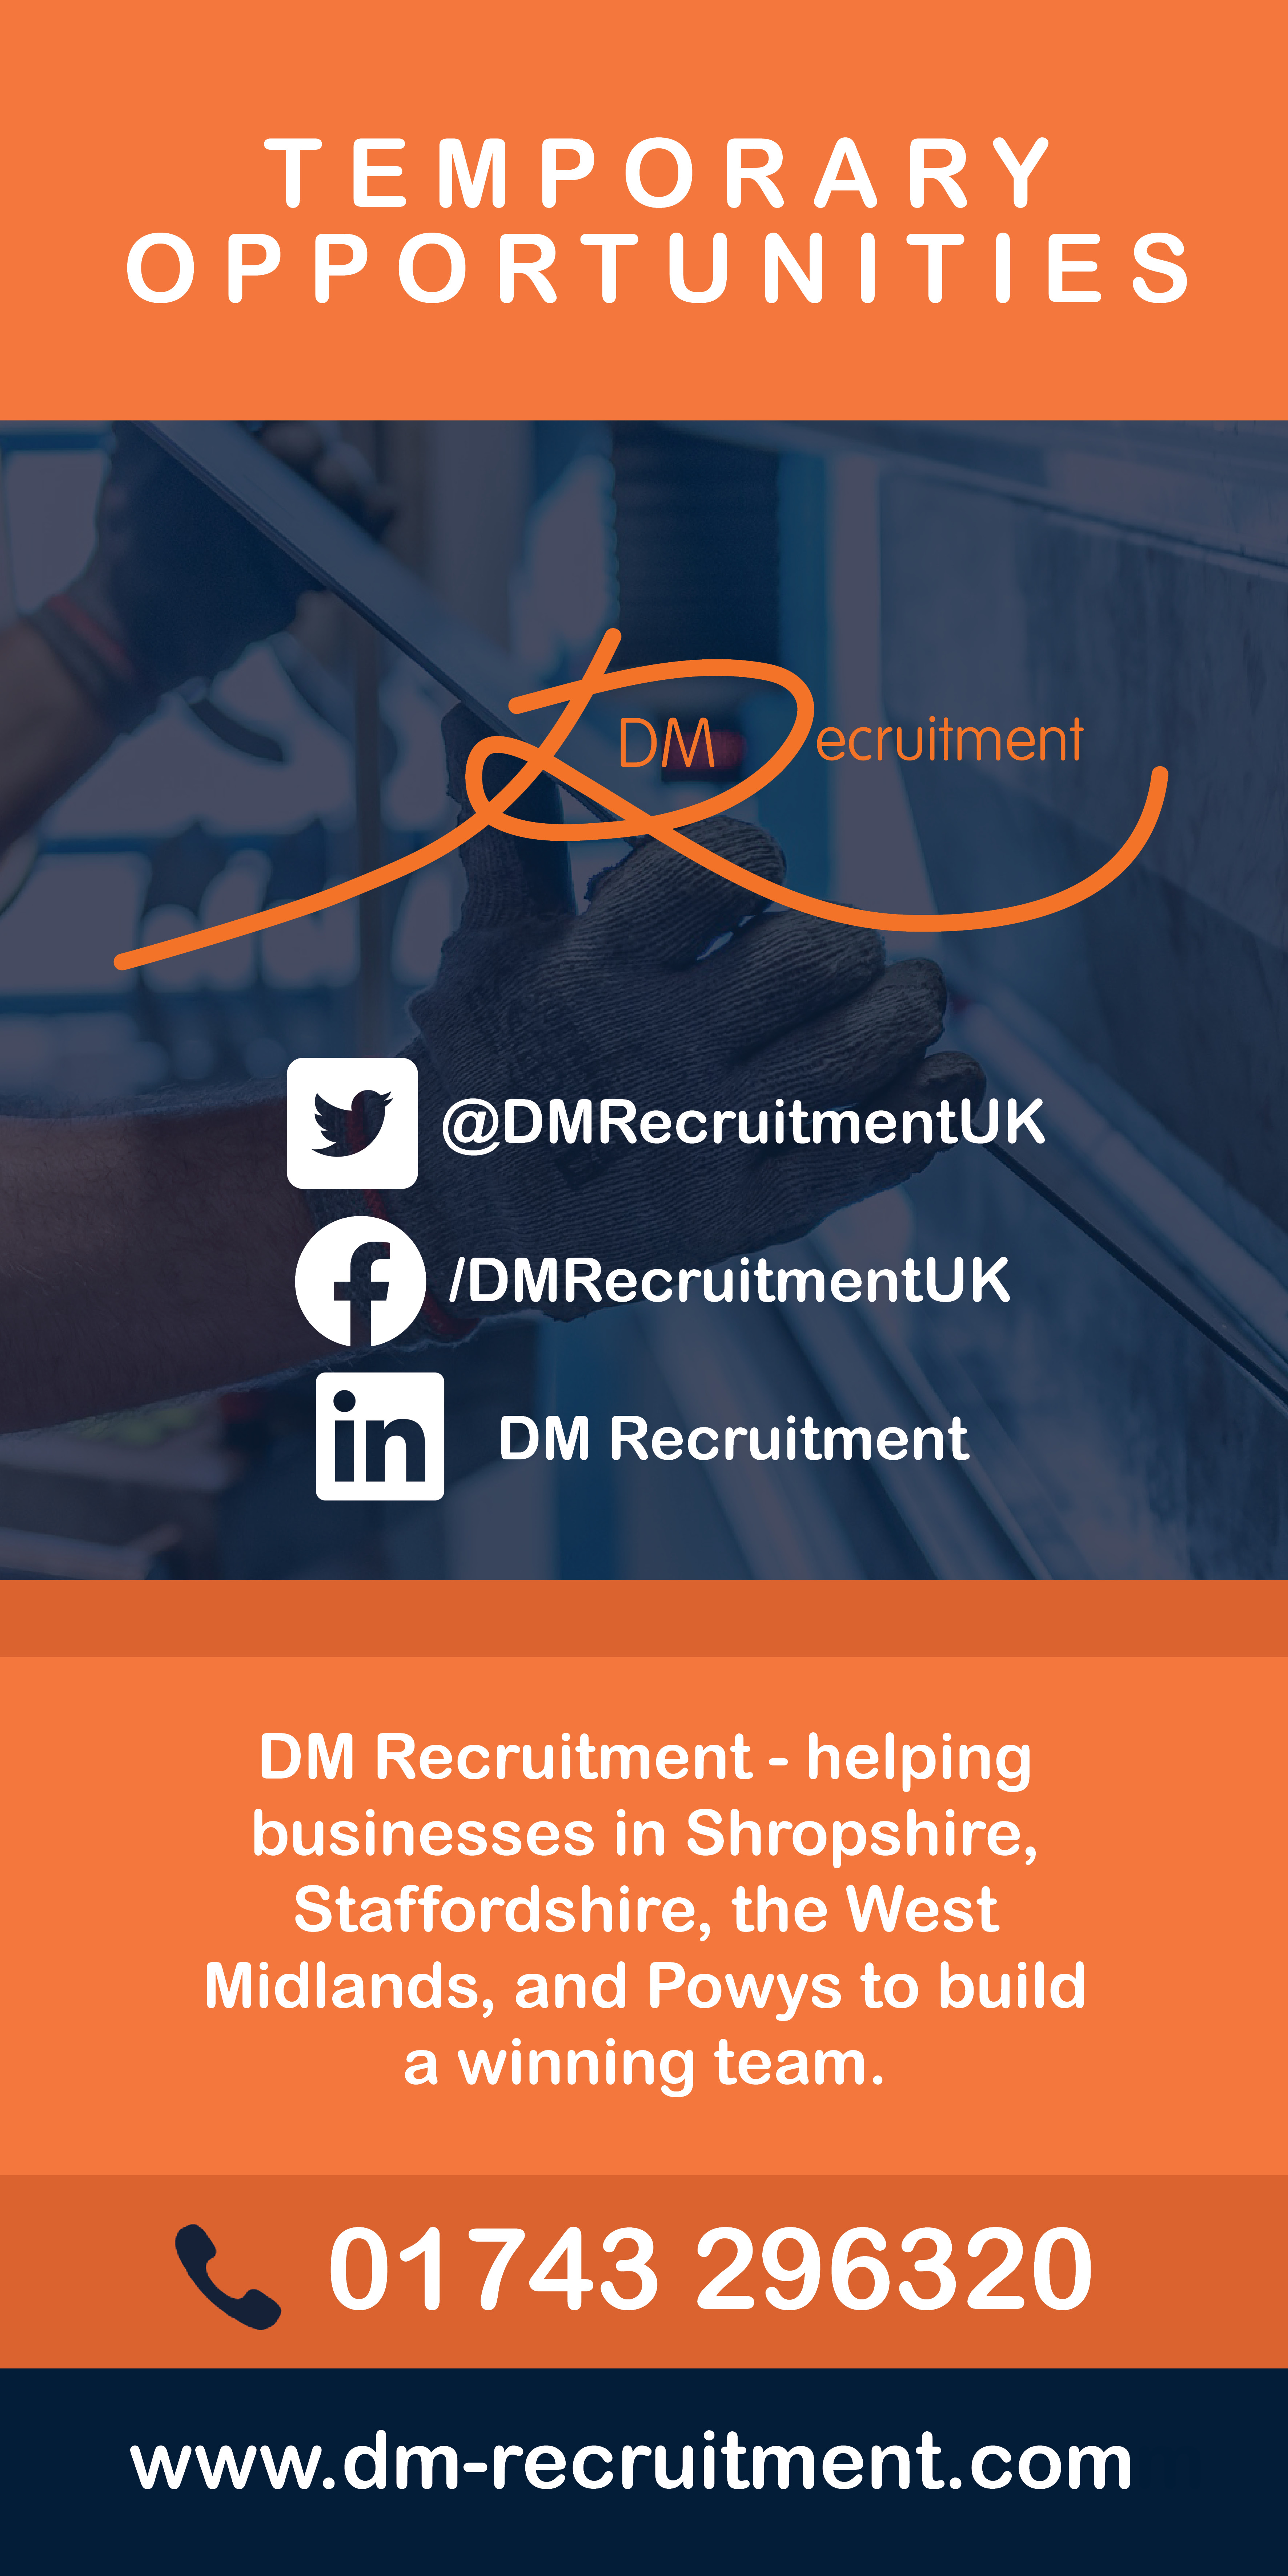 https://www.dm-recruitment.com